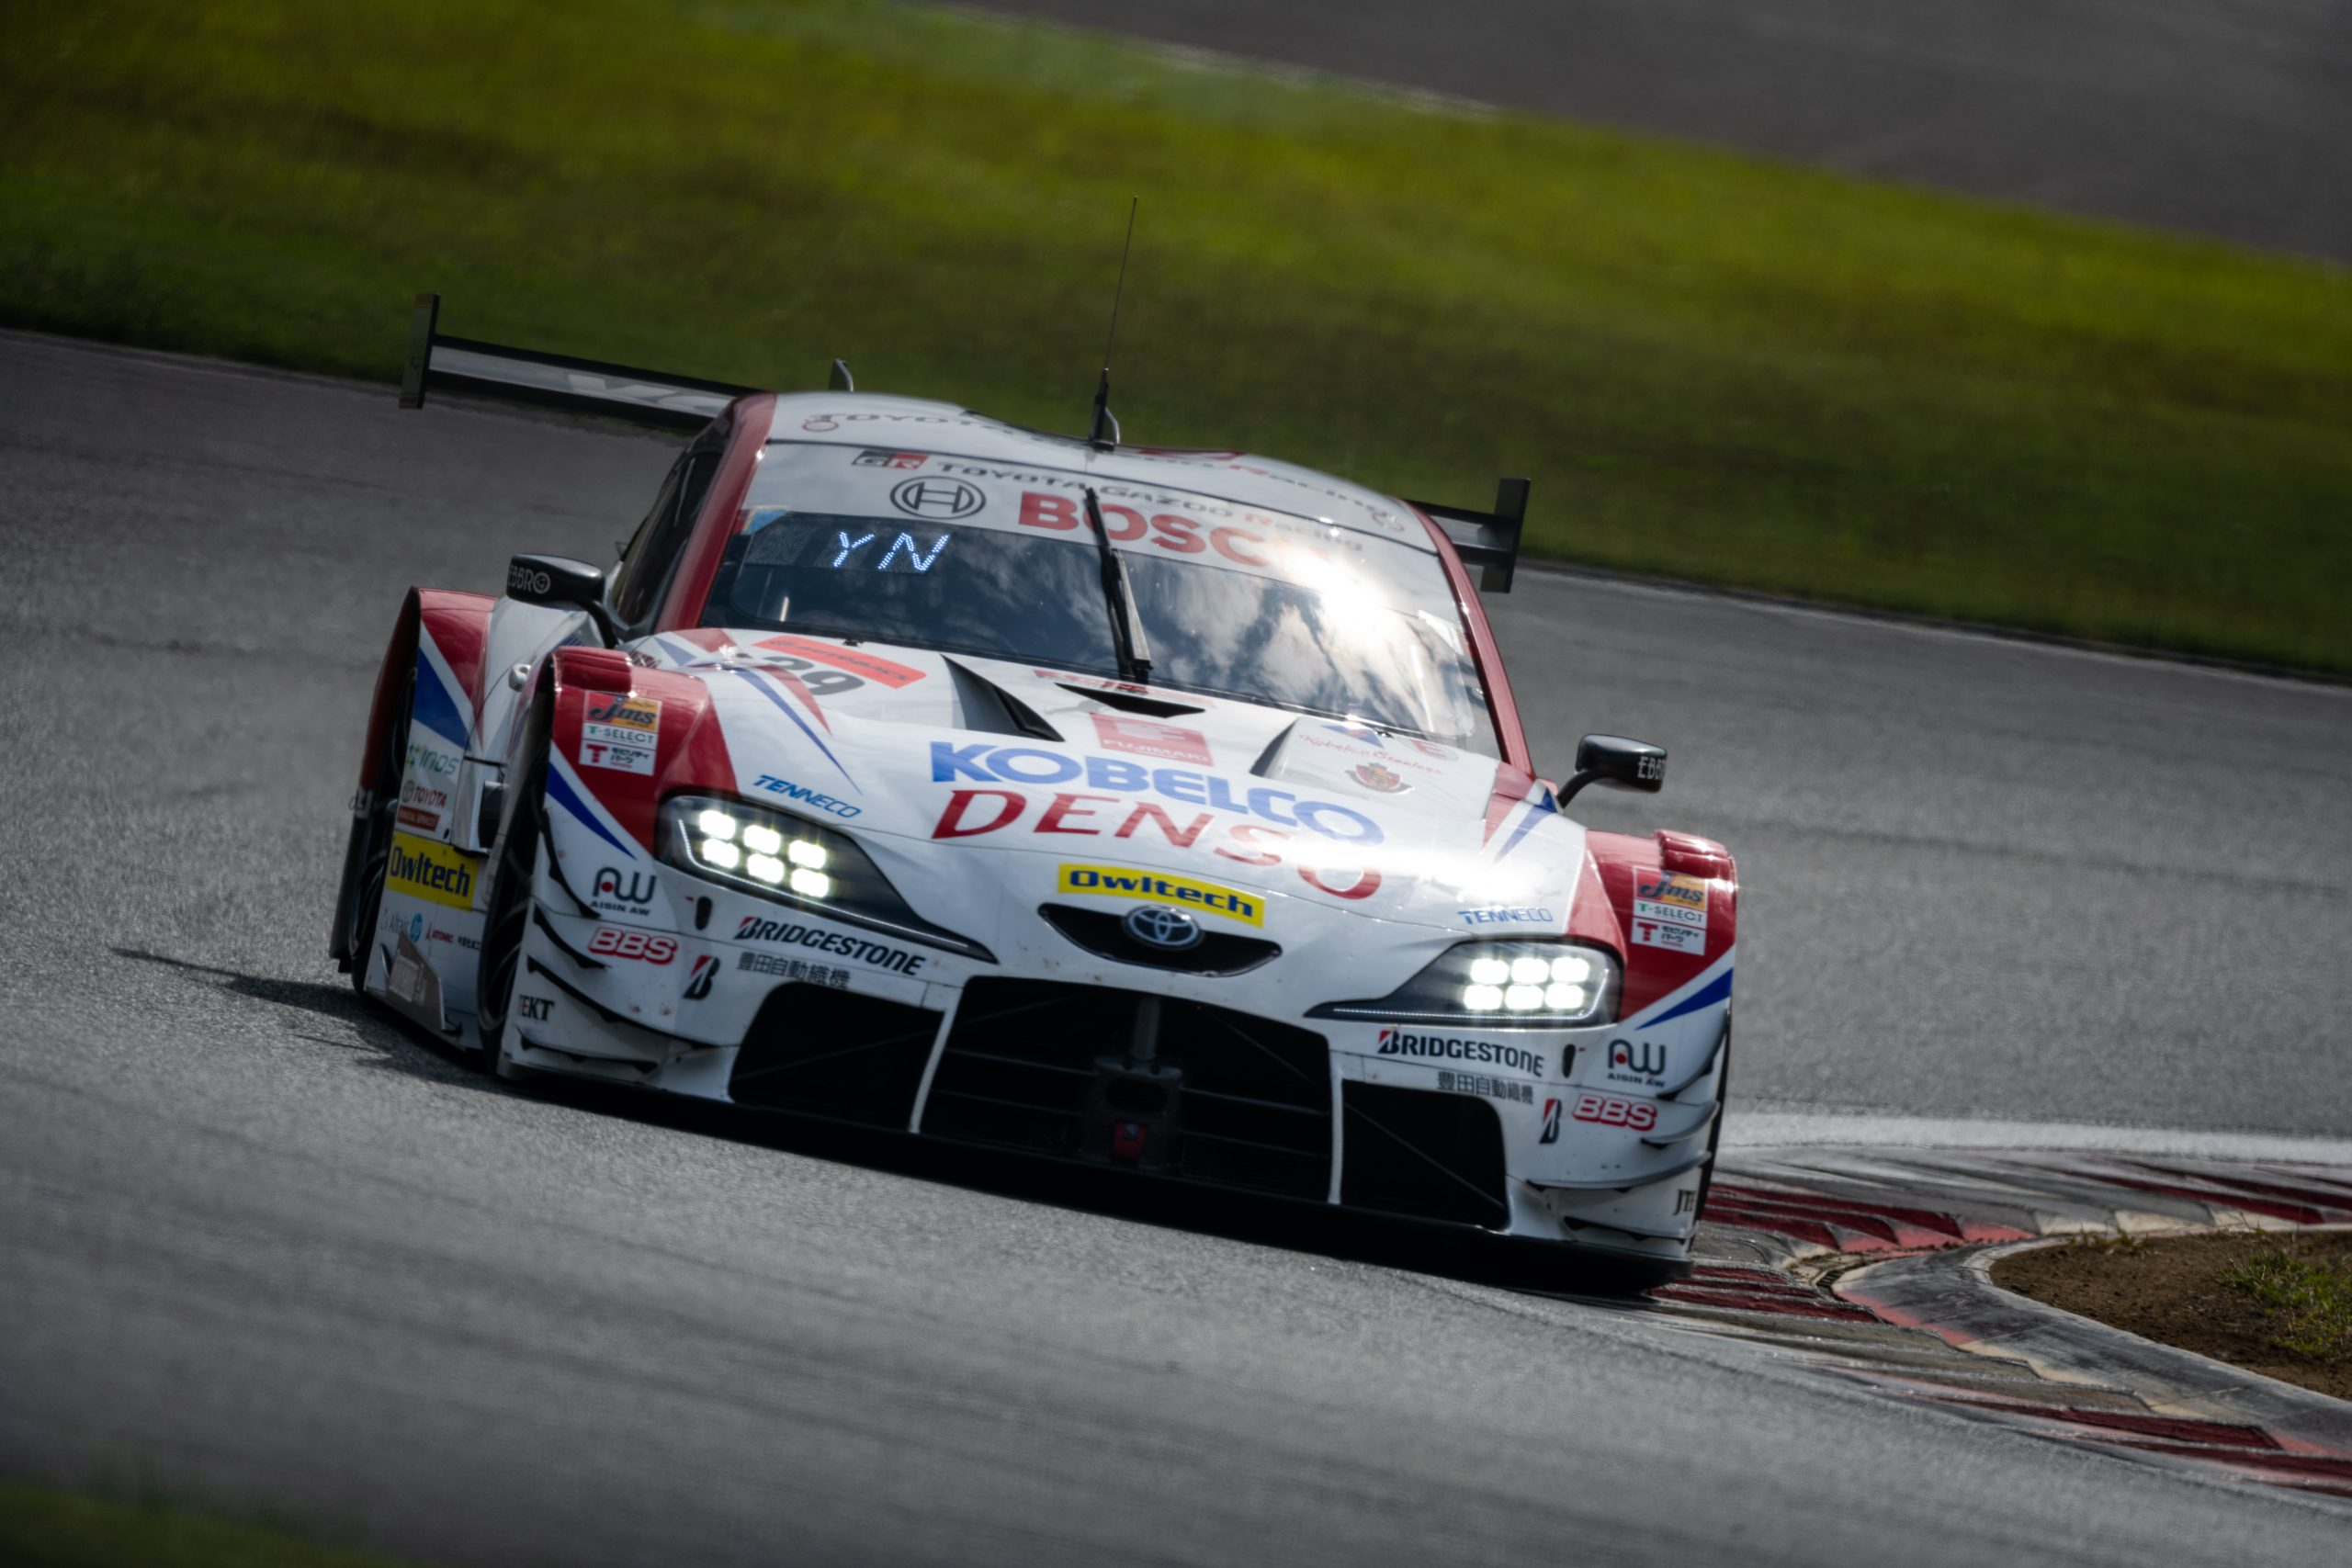 Motorsports photo #10 【EOS-1D X Mark III】